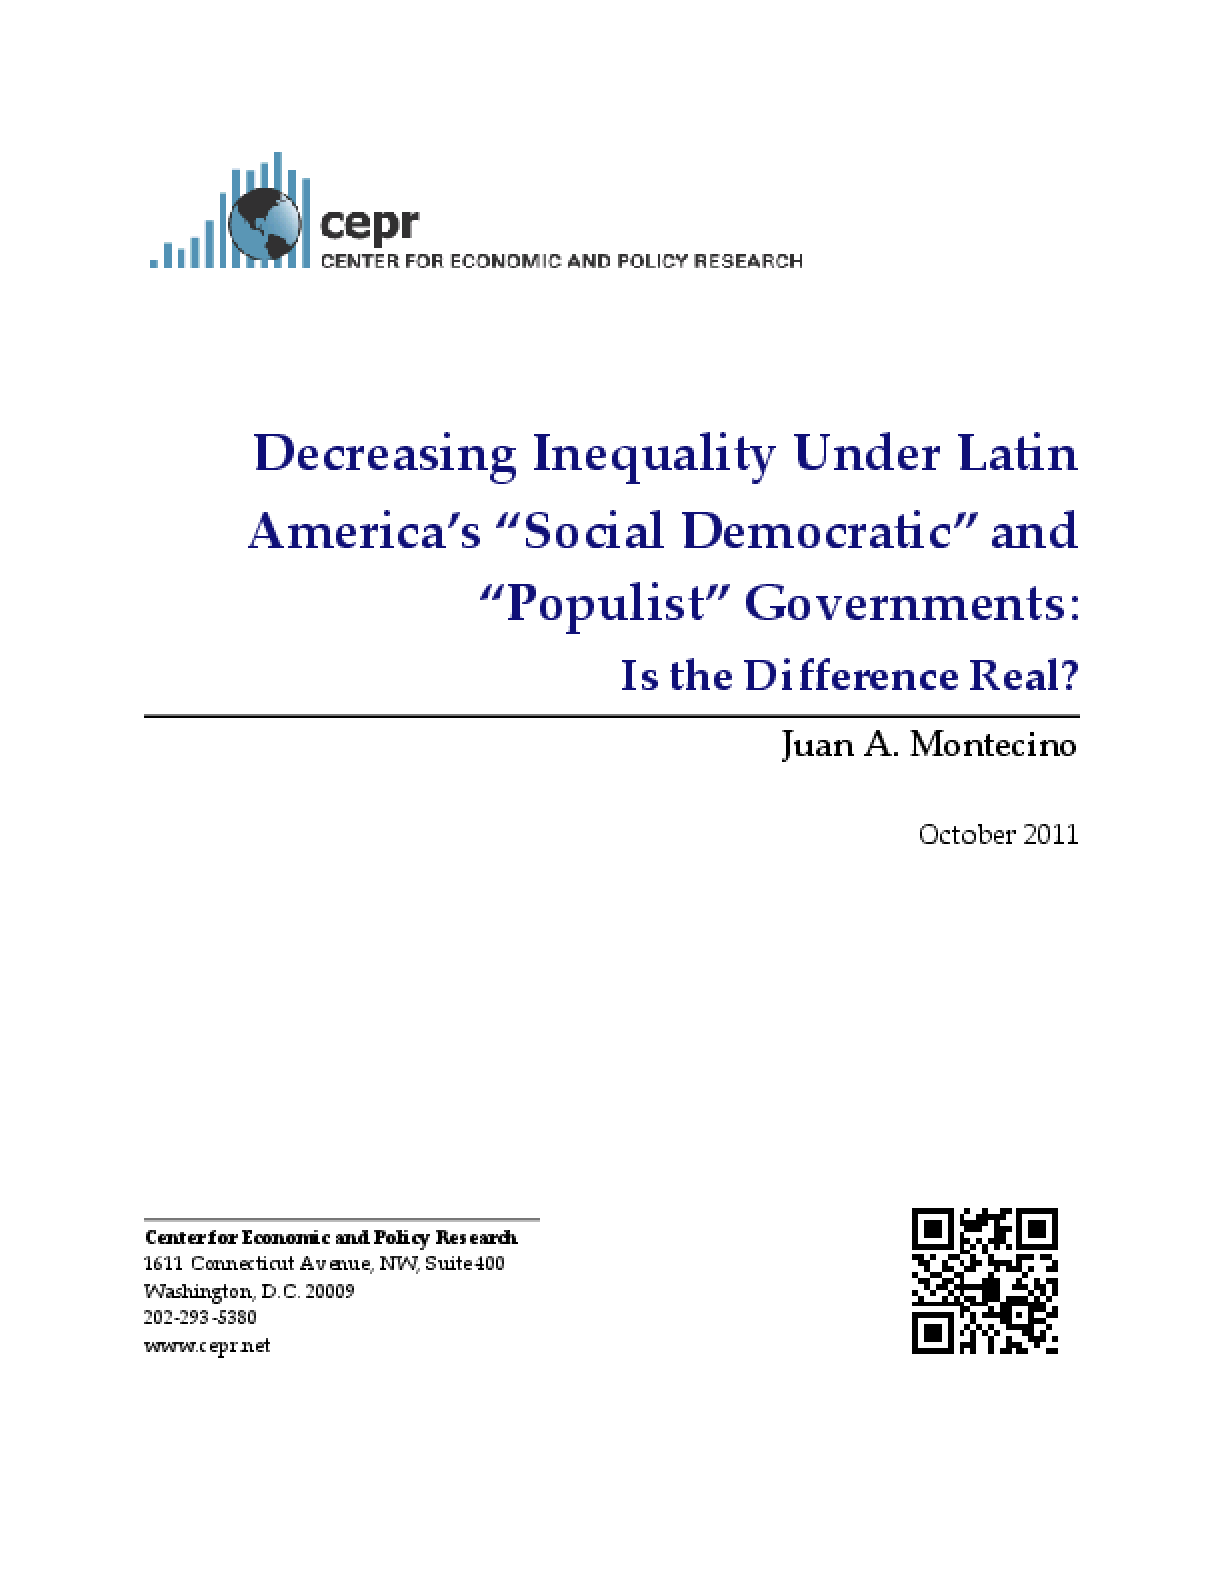 Decreasing Inequality Under Latin America's a